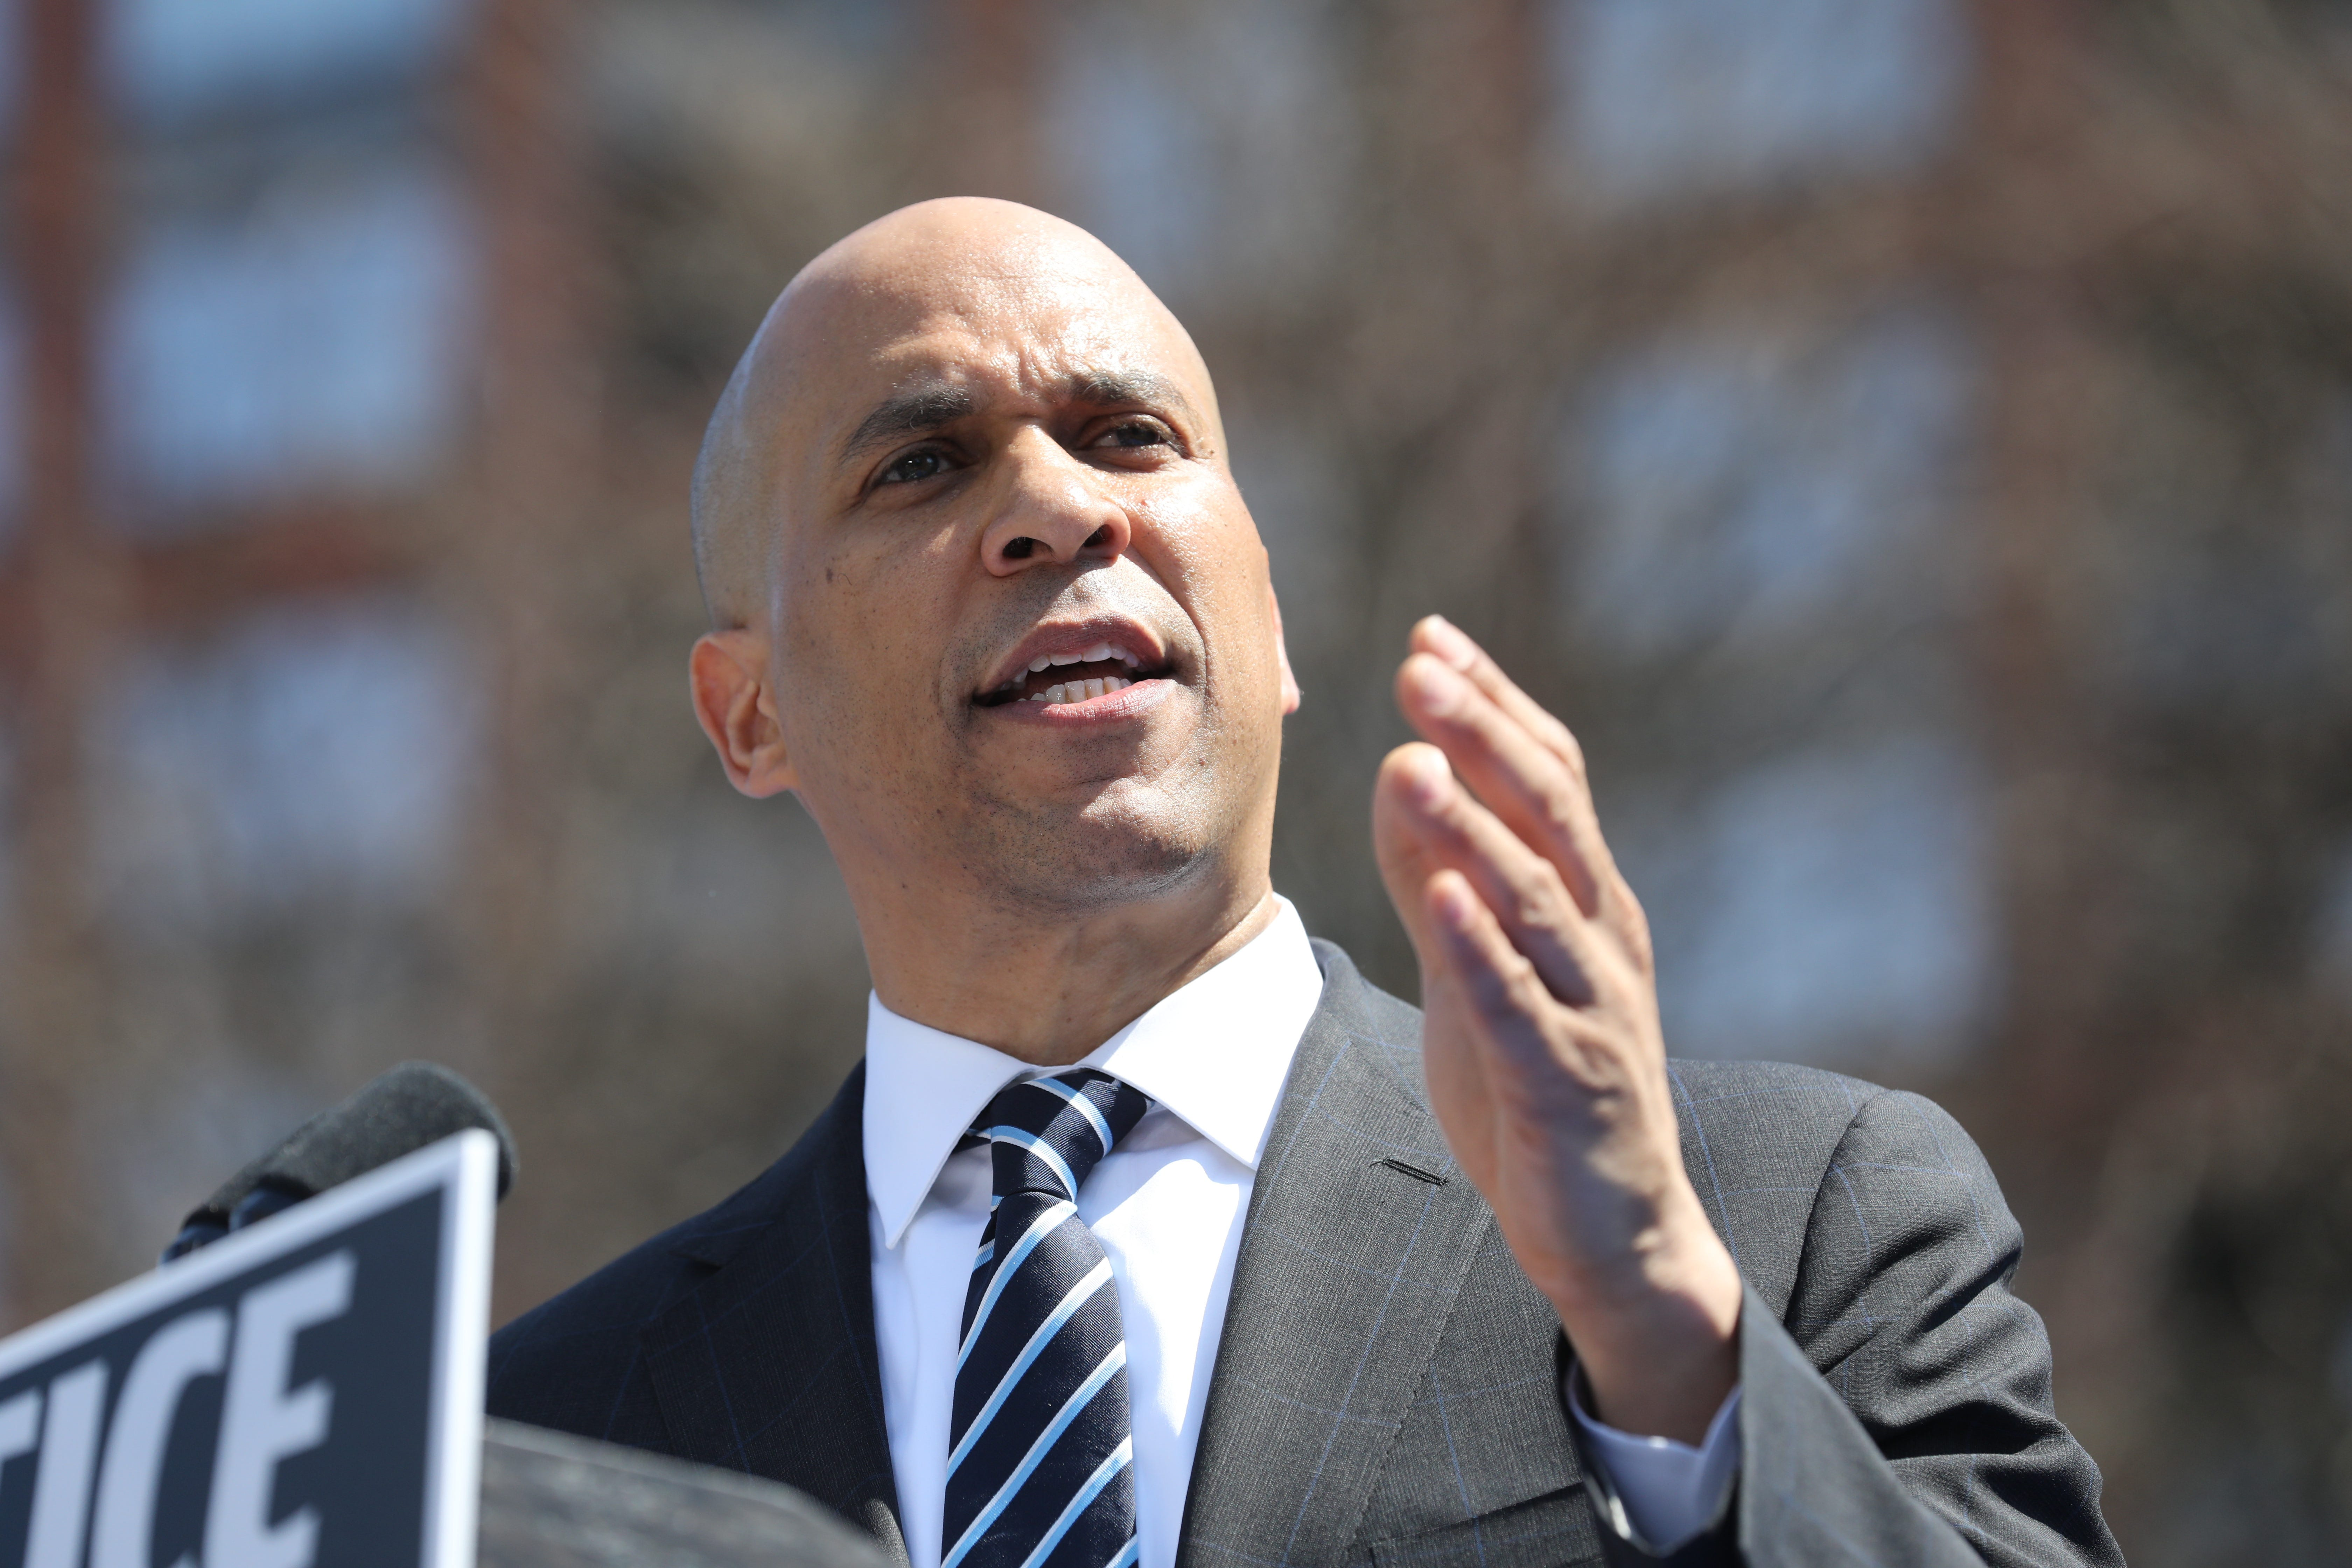 Cory Booker would make NY Giants the New Jersey Giants if elected president